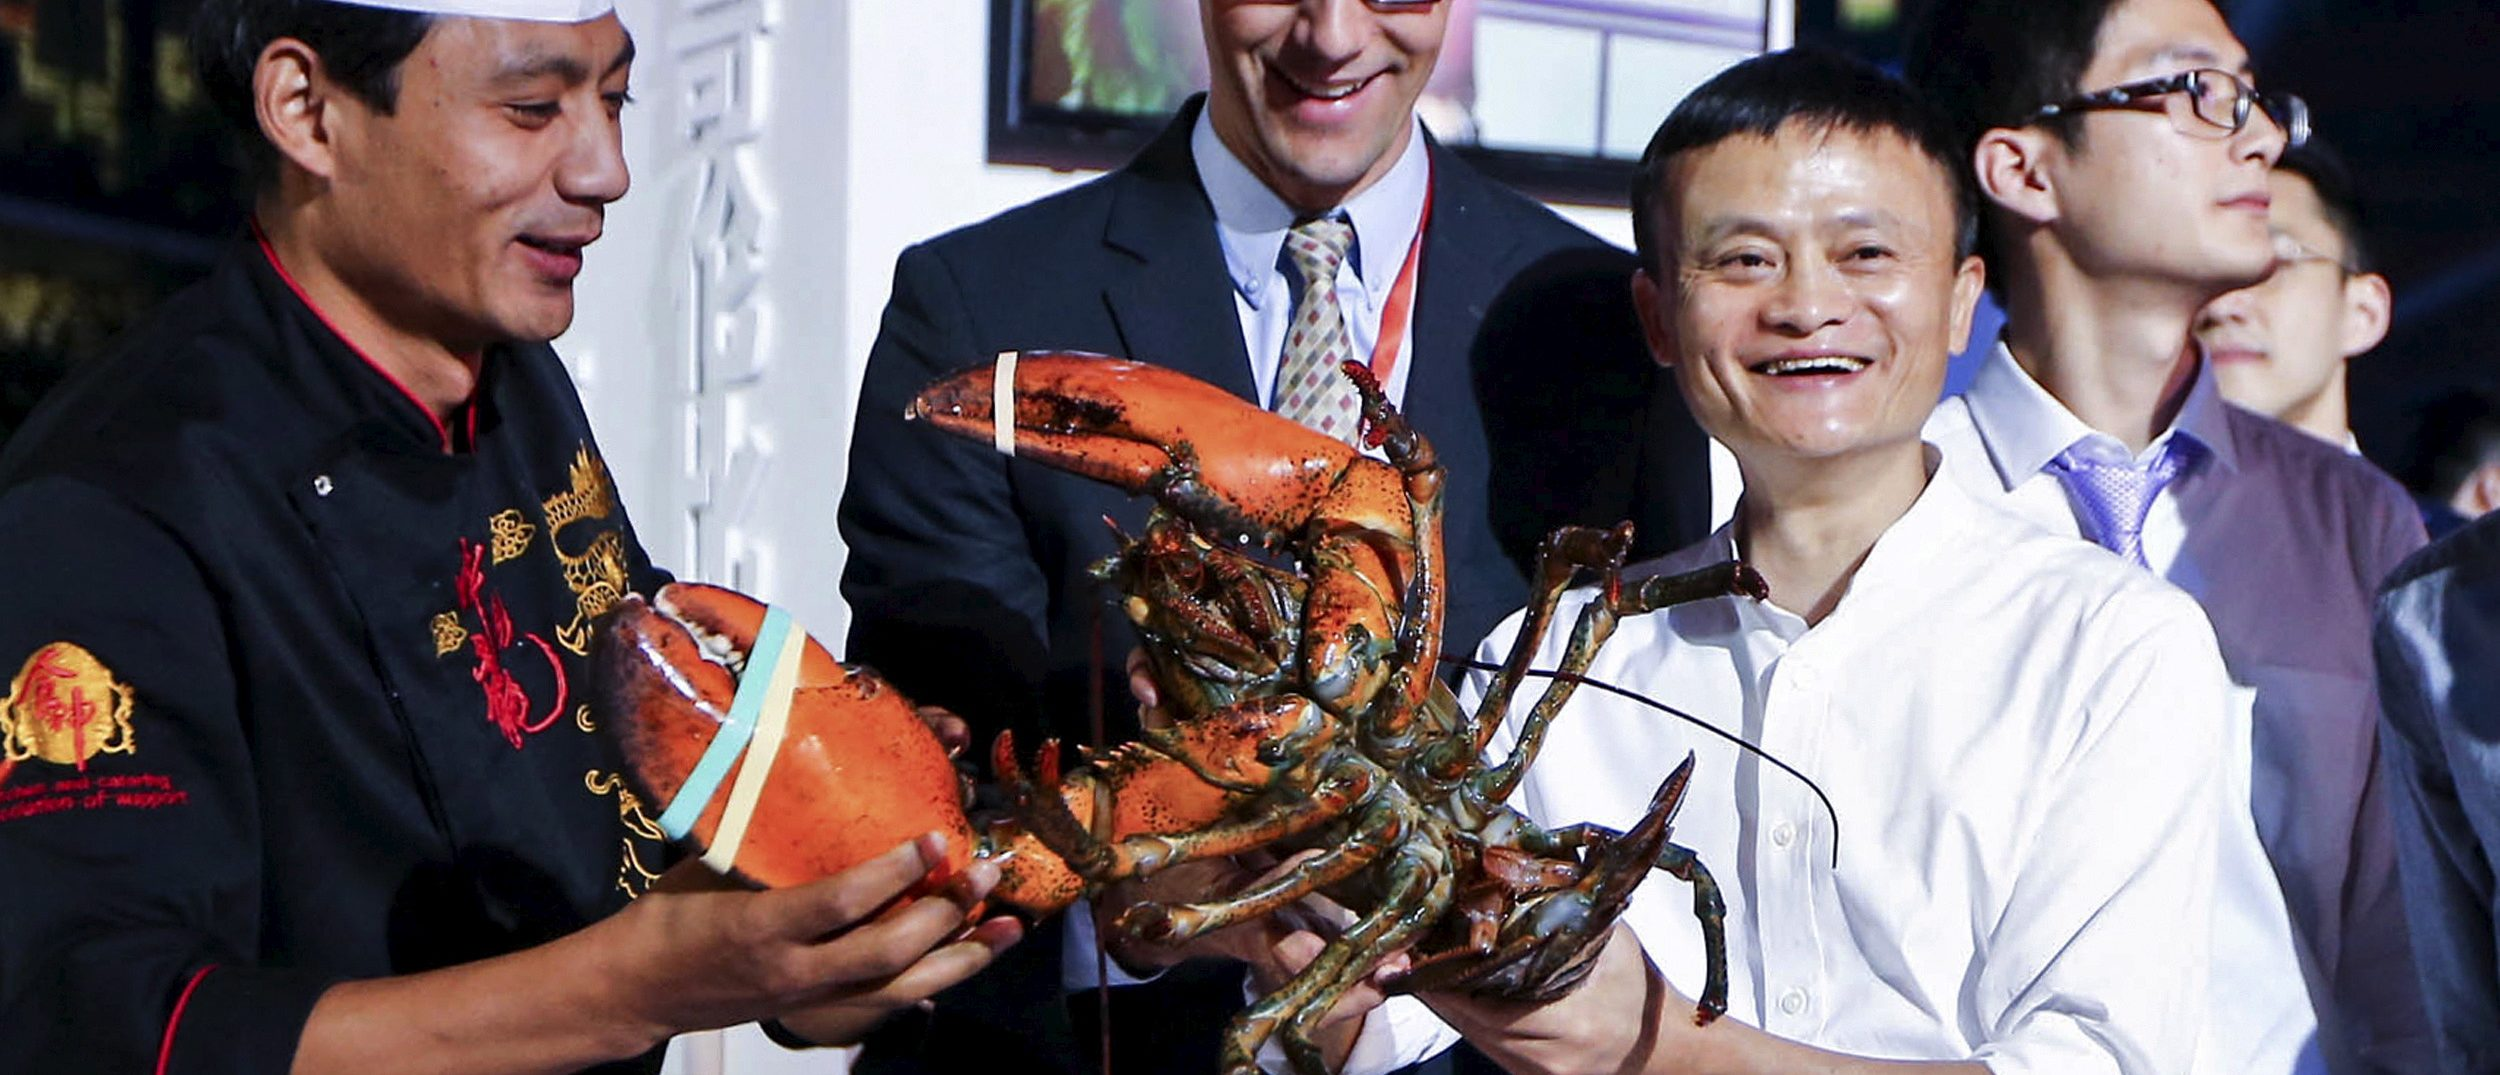 Alibaba Group's executive chairman Jack Ma (R, in white) holds a lobster (PHOTO: REUTERS/Stringer)